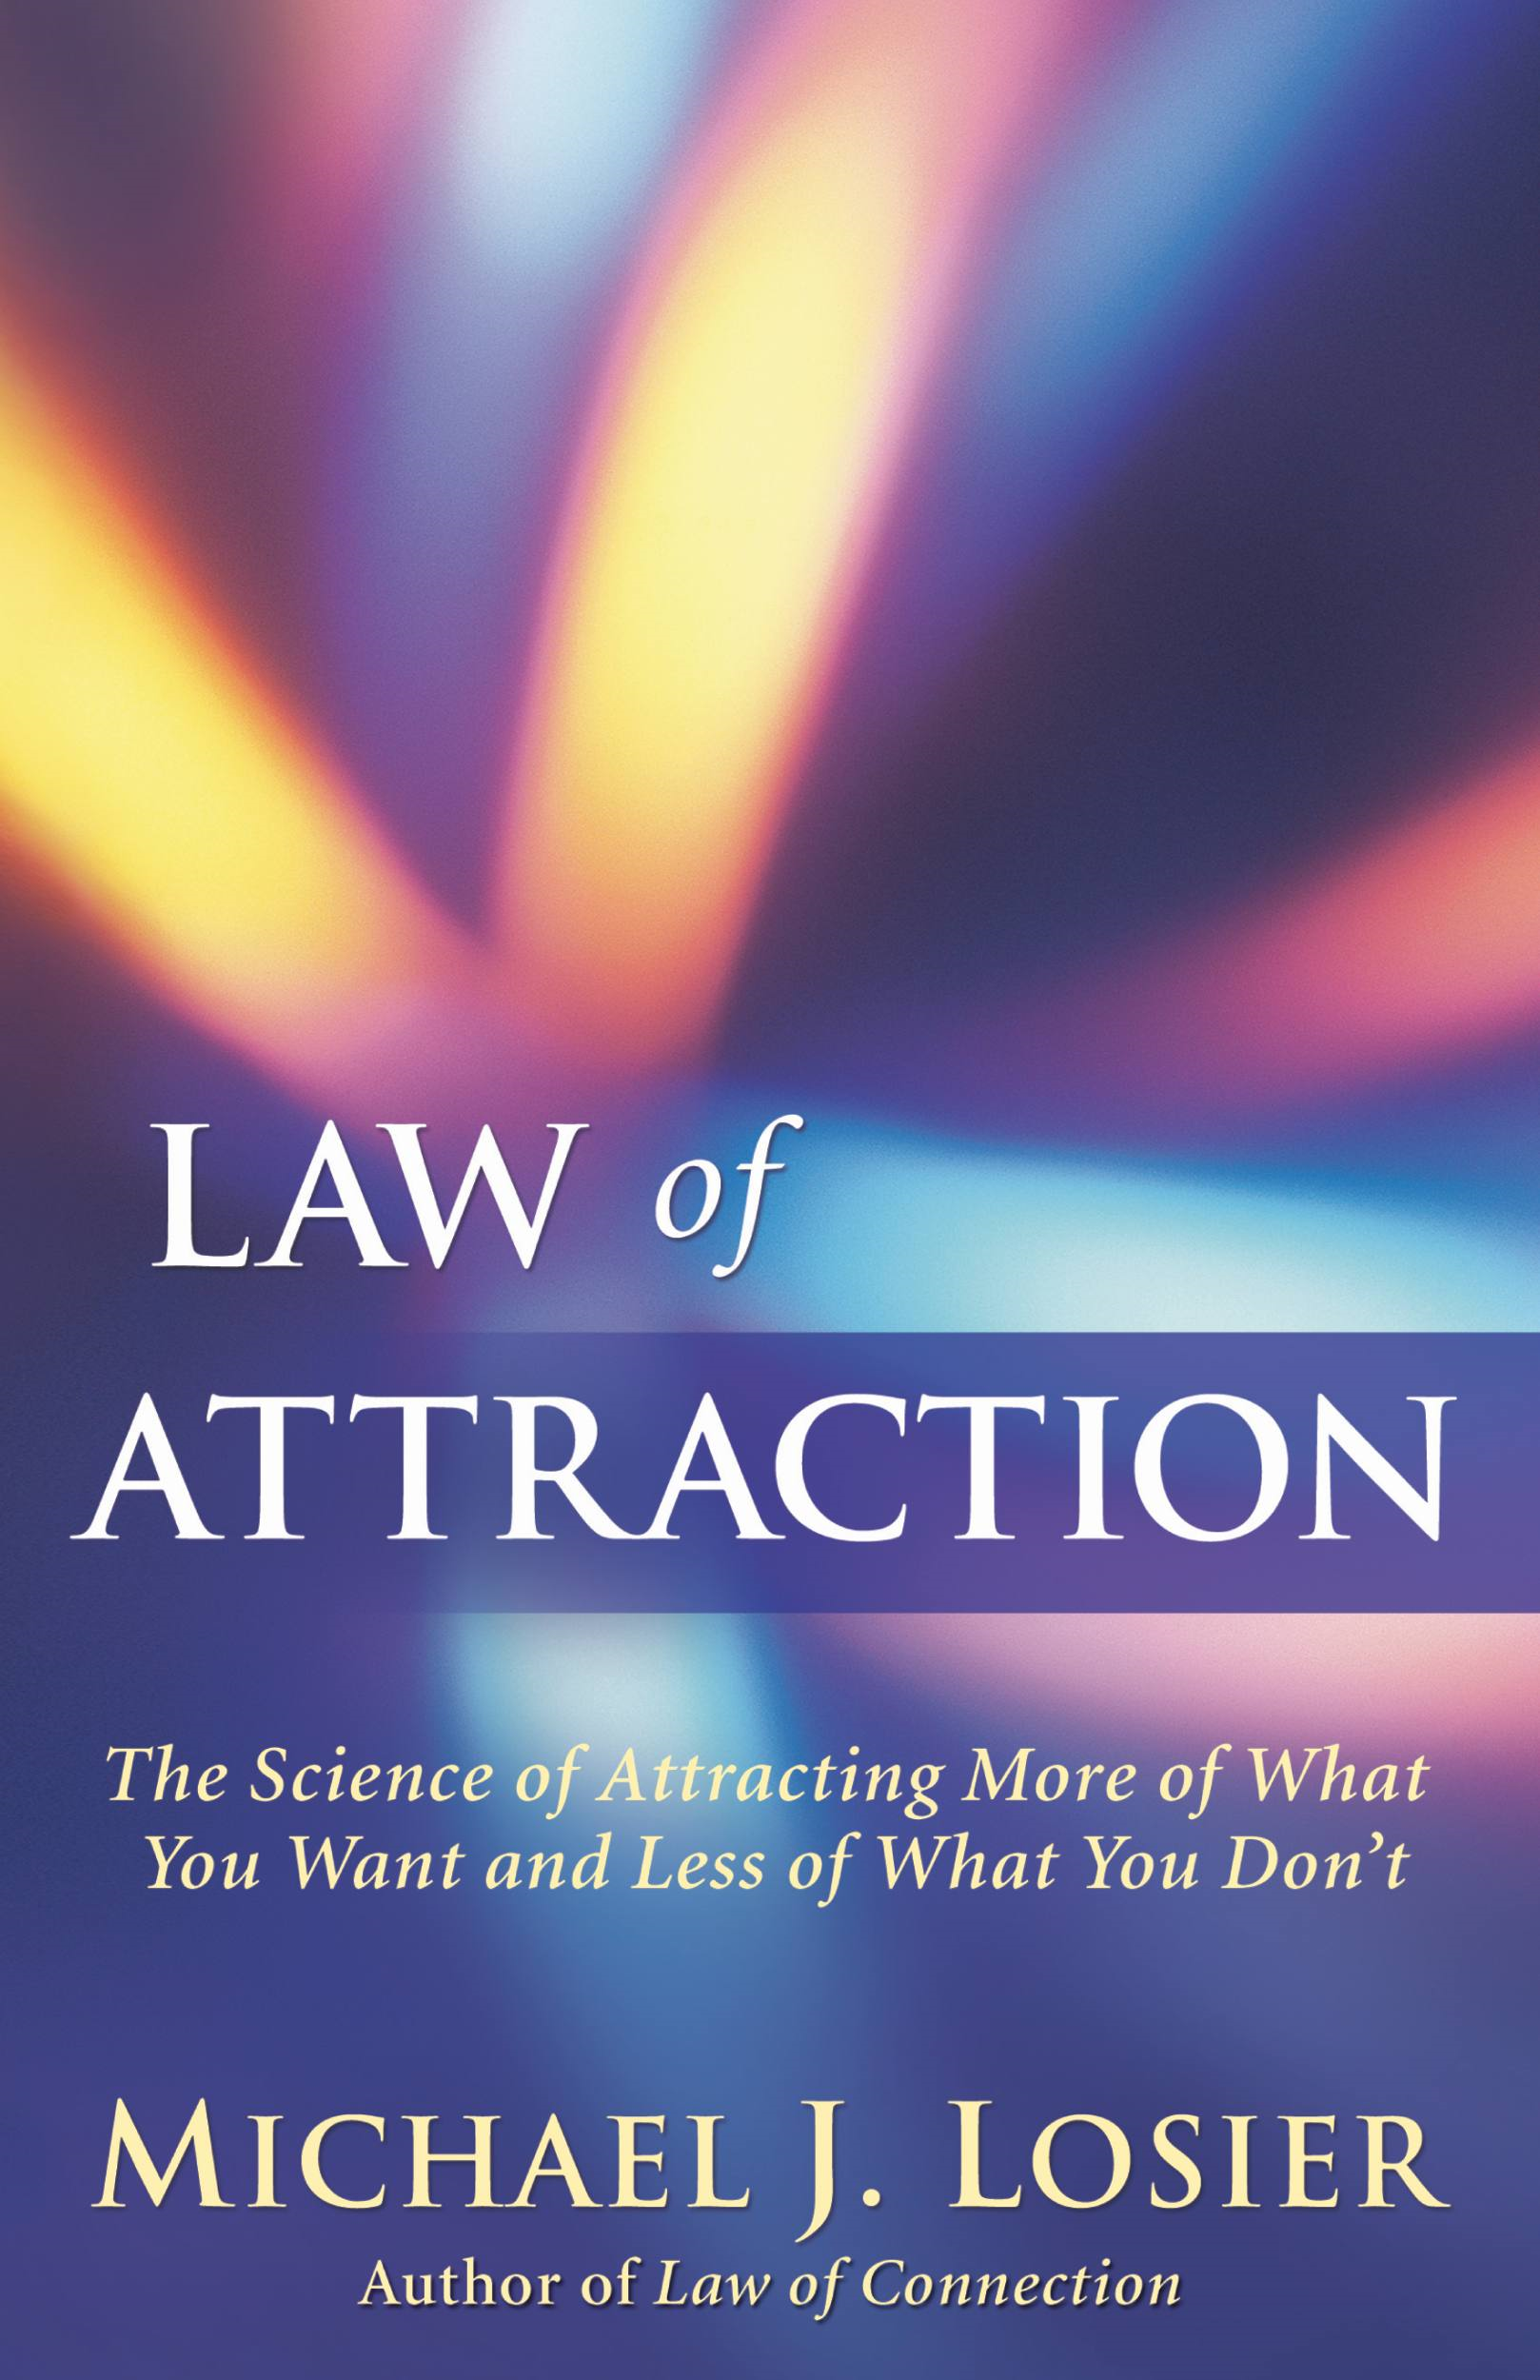 Law of Attraction By: Michael J. Losier